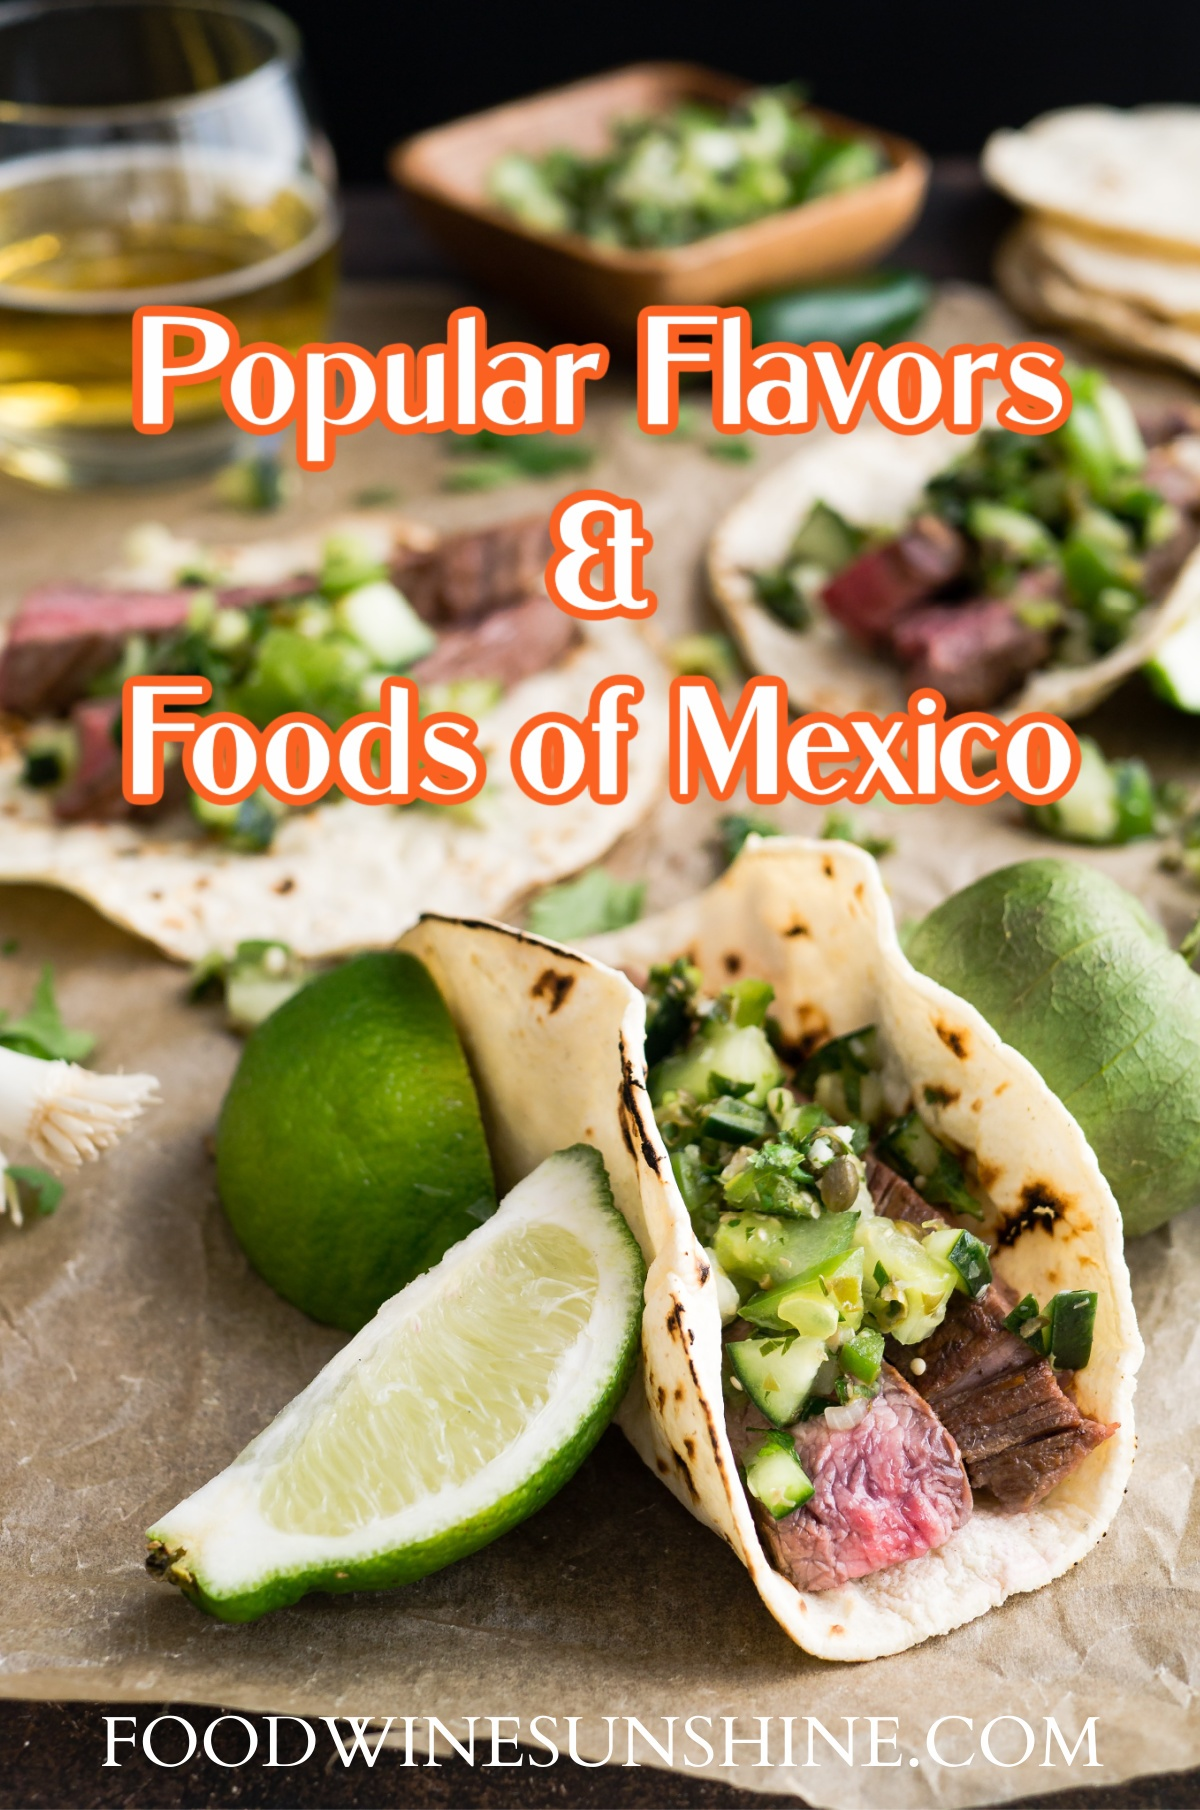 Popular Flavors and Foods of Mexico